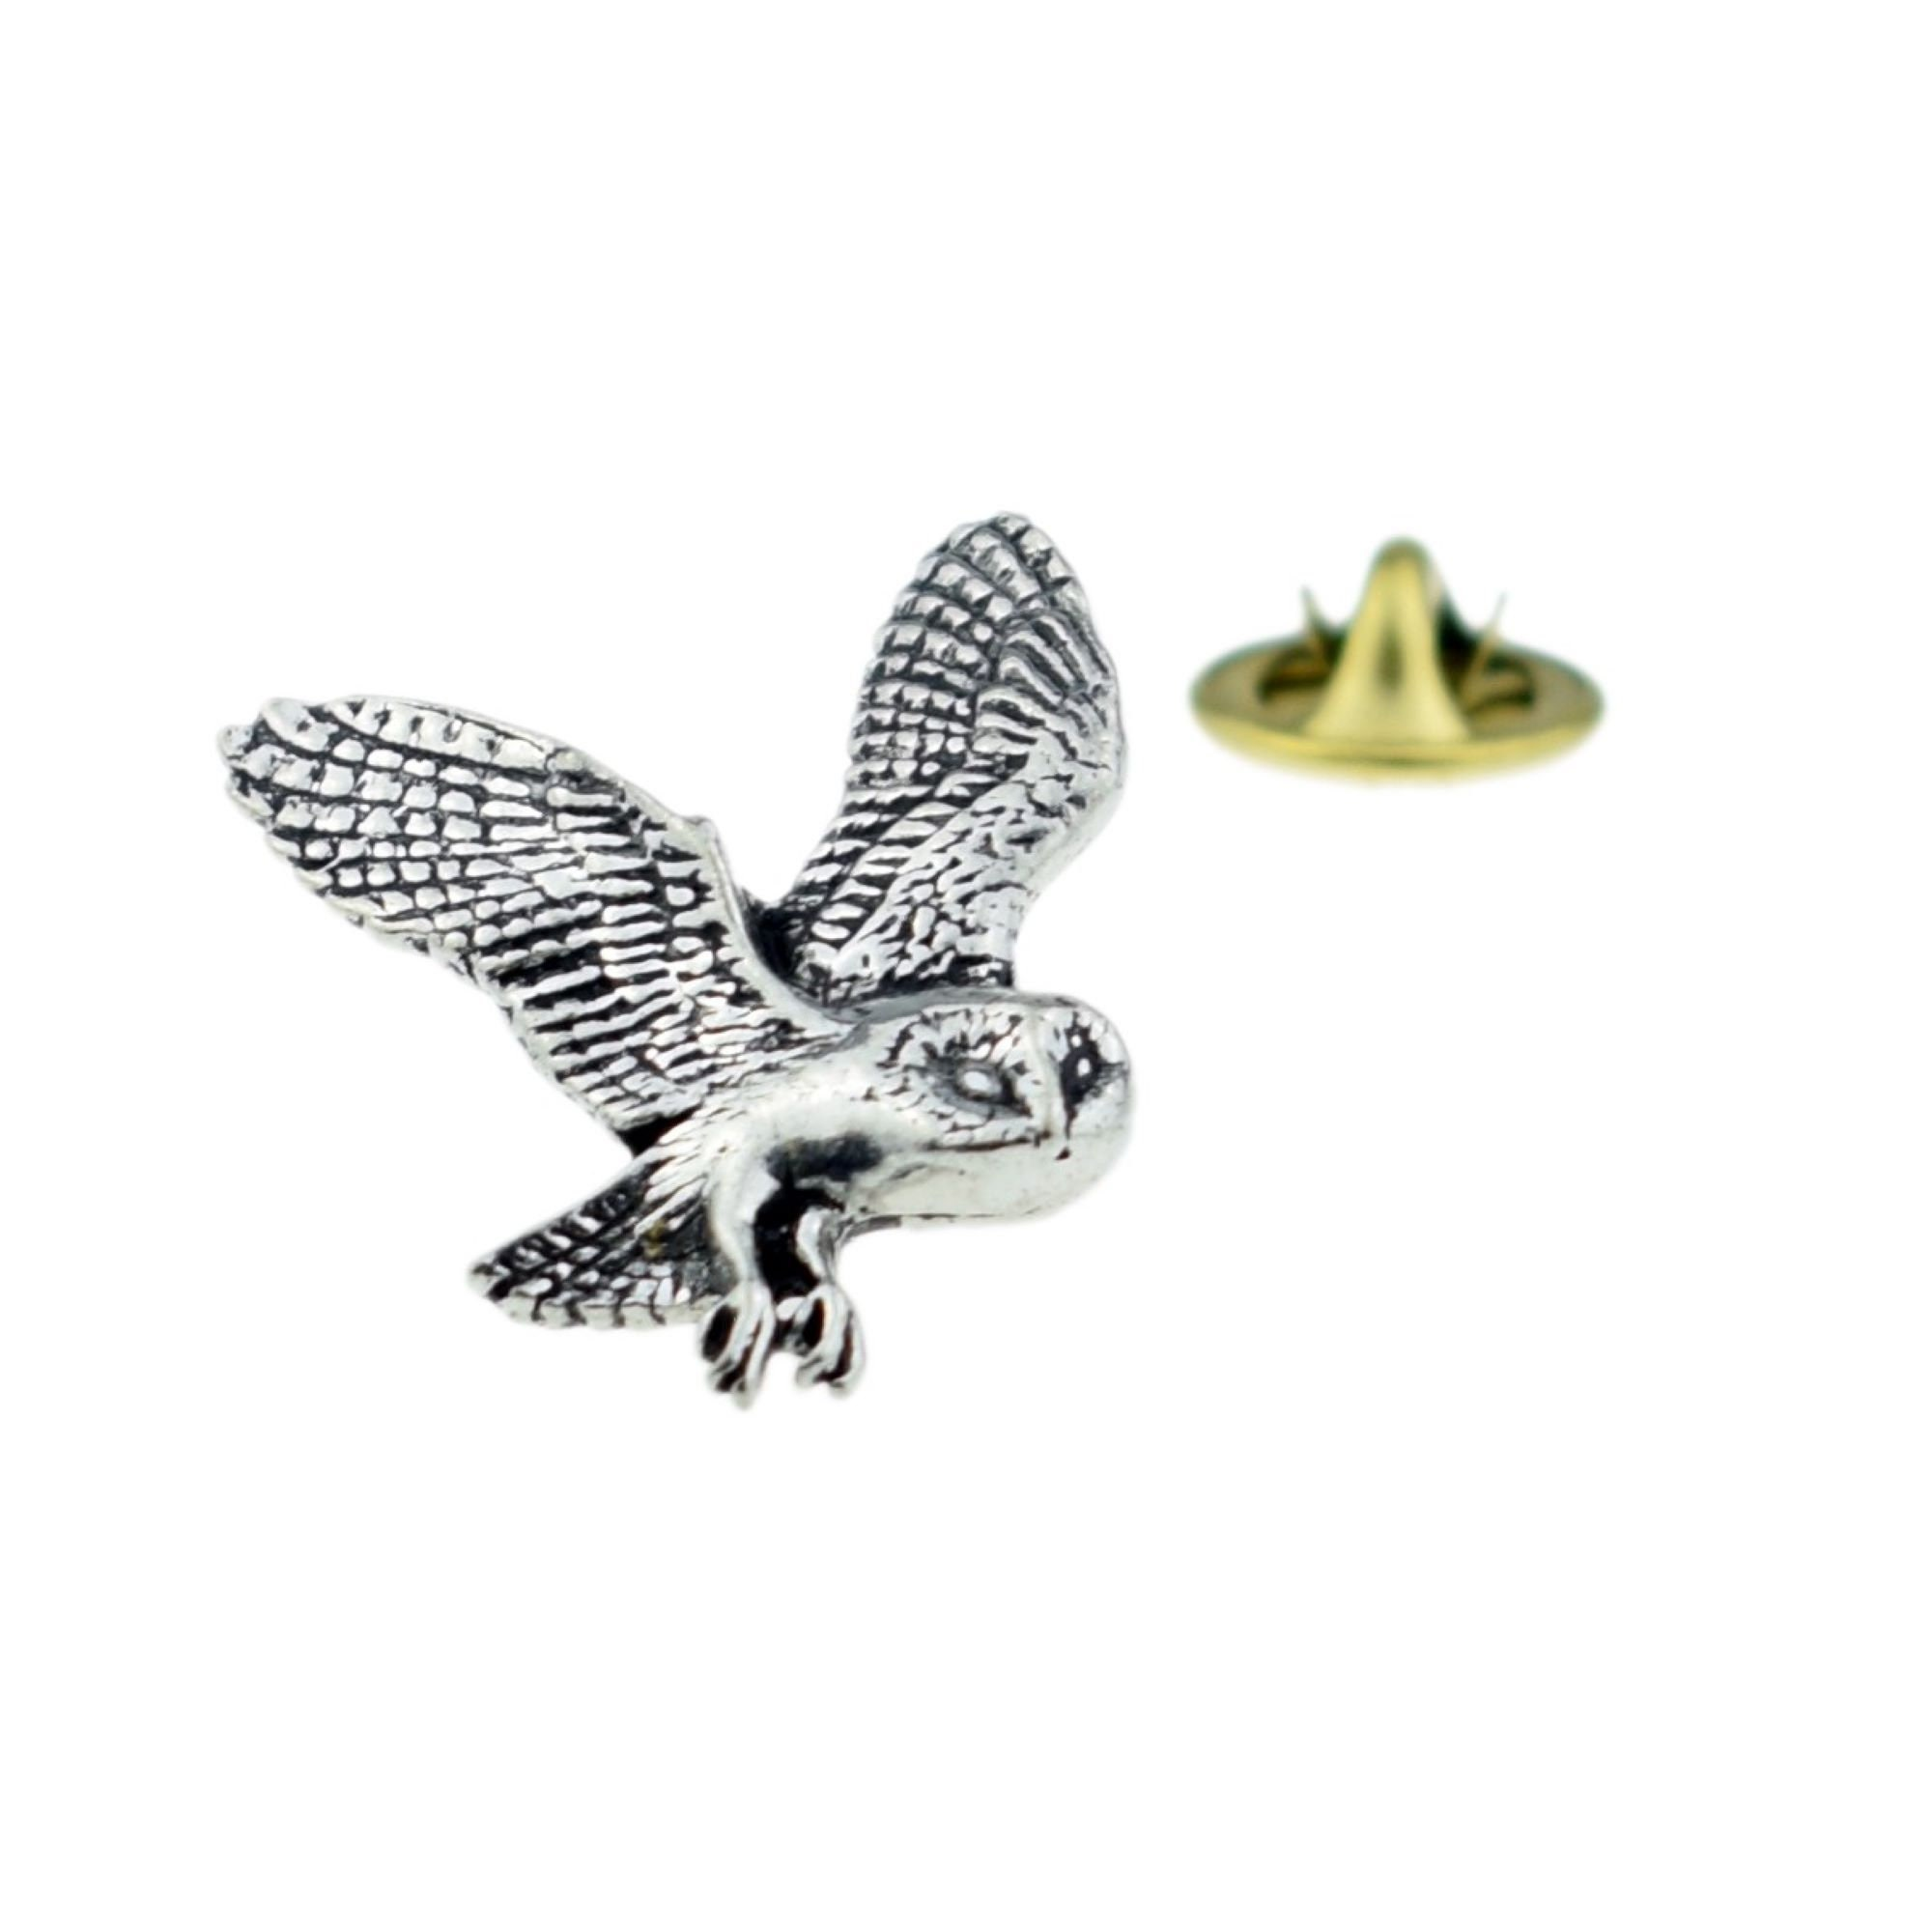 Gift Box Hedgehog Finest English Pewter Lapel Pin Badge Brooch Hand Made